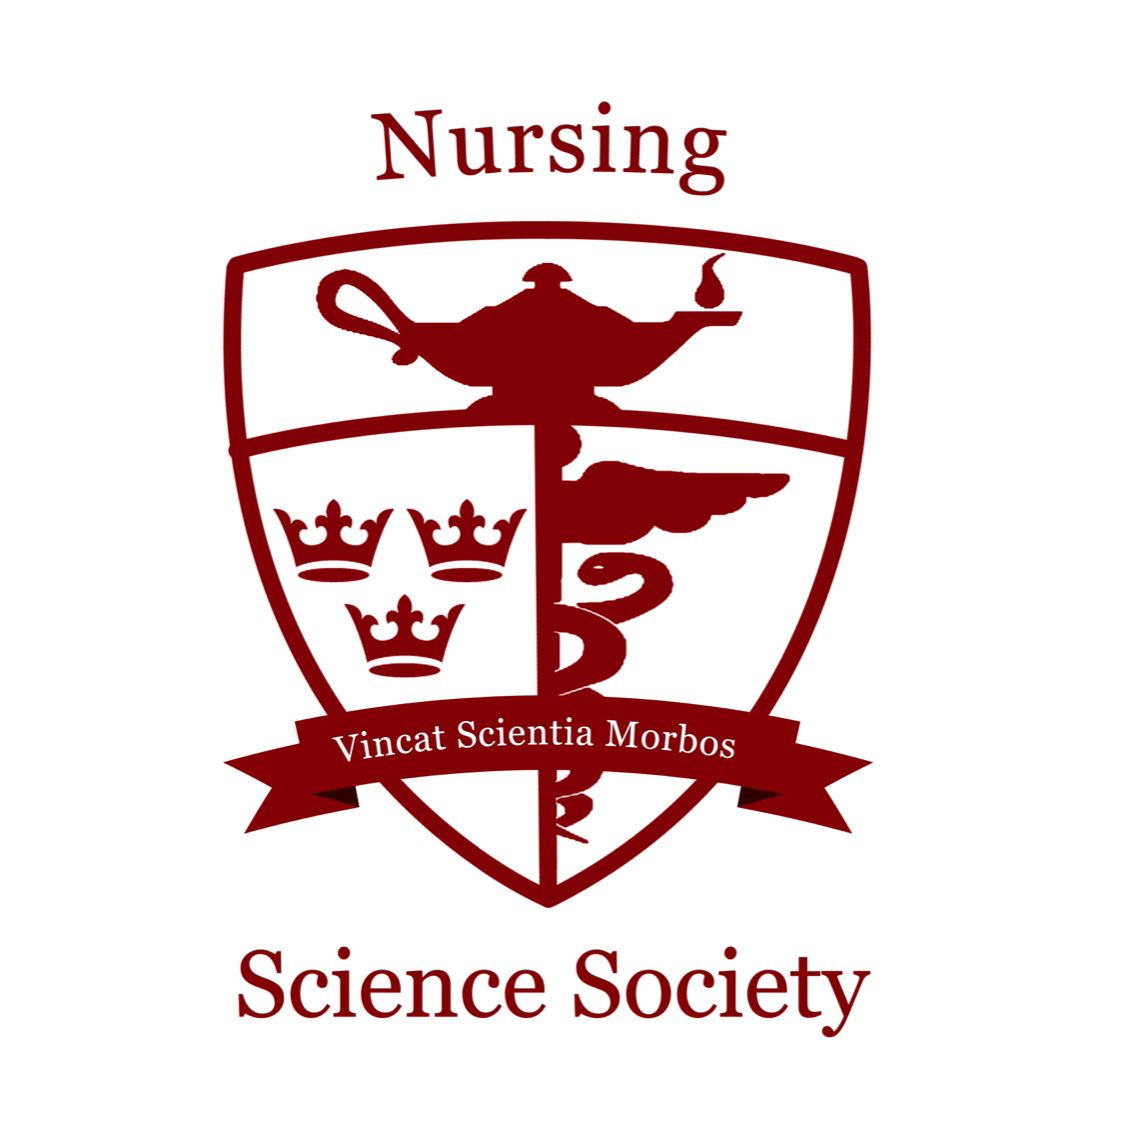 Nursing Science Society